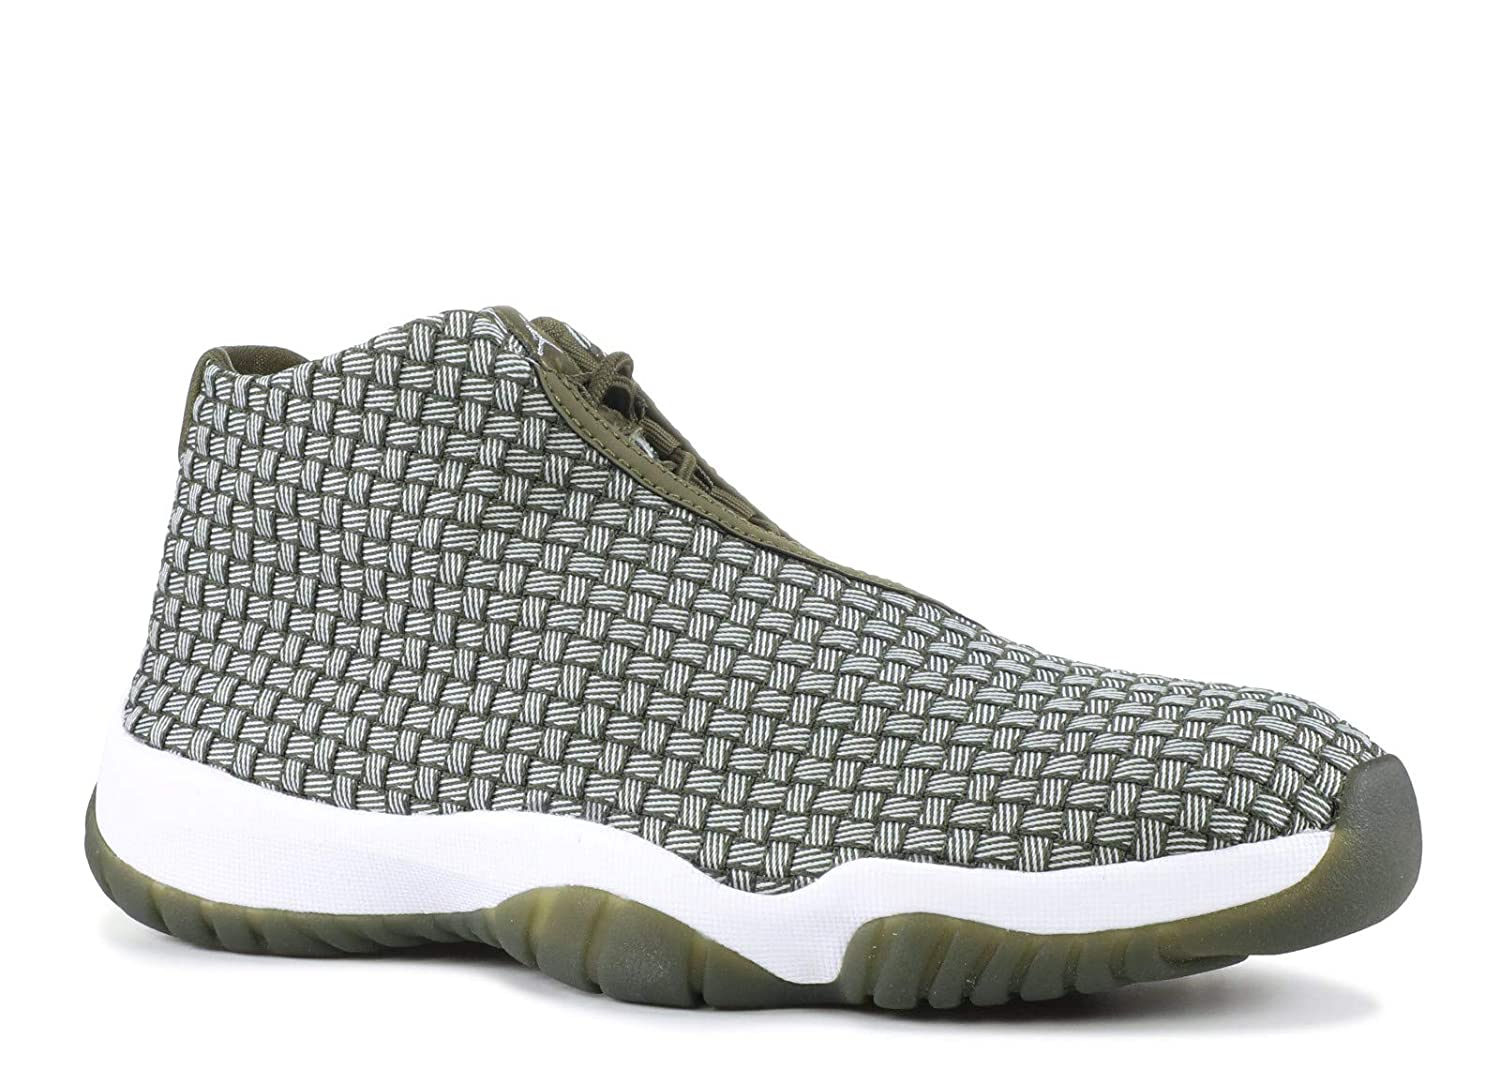 Olive Canvas 305 Nike Men's Air Jordan Future Basketball shoes